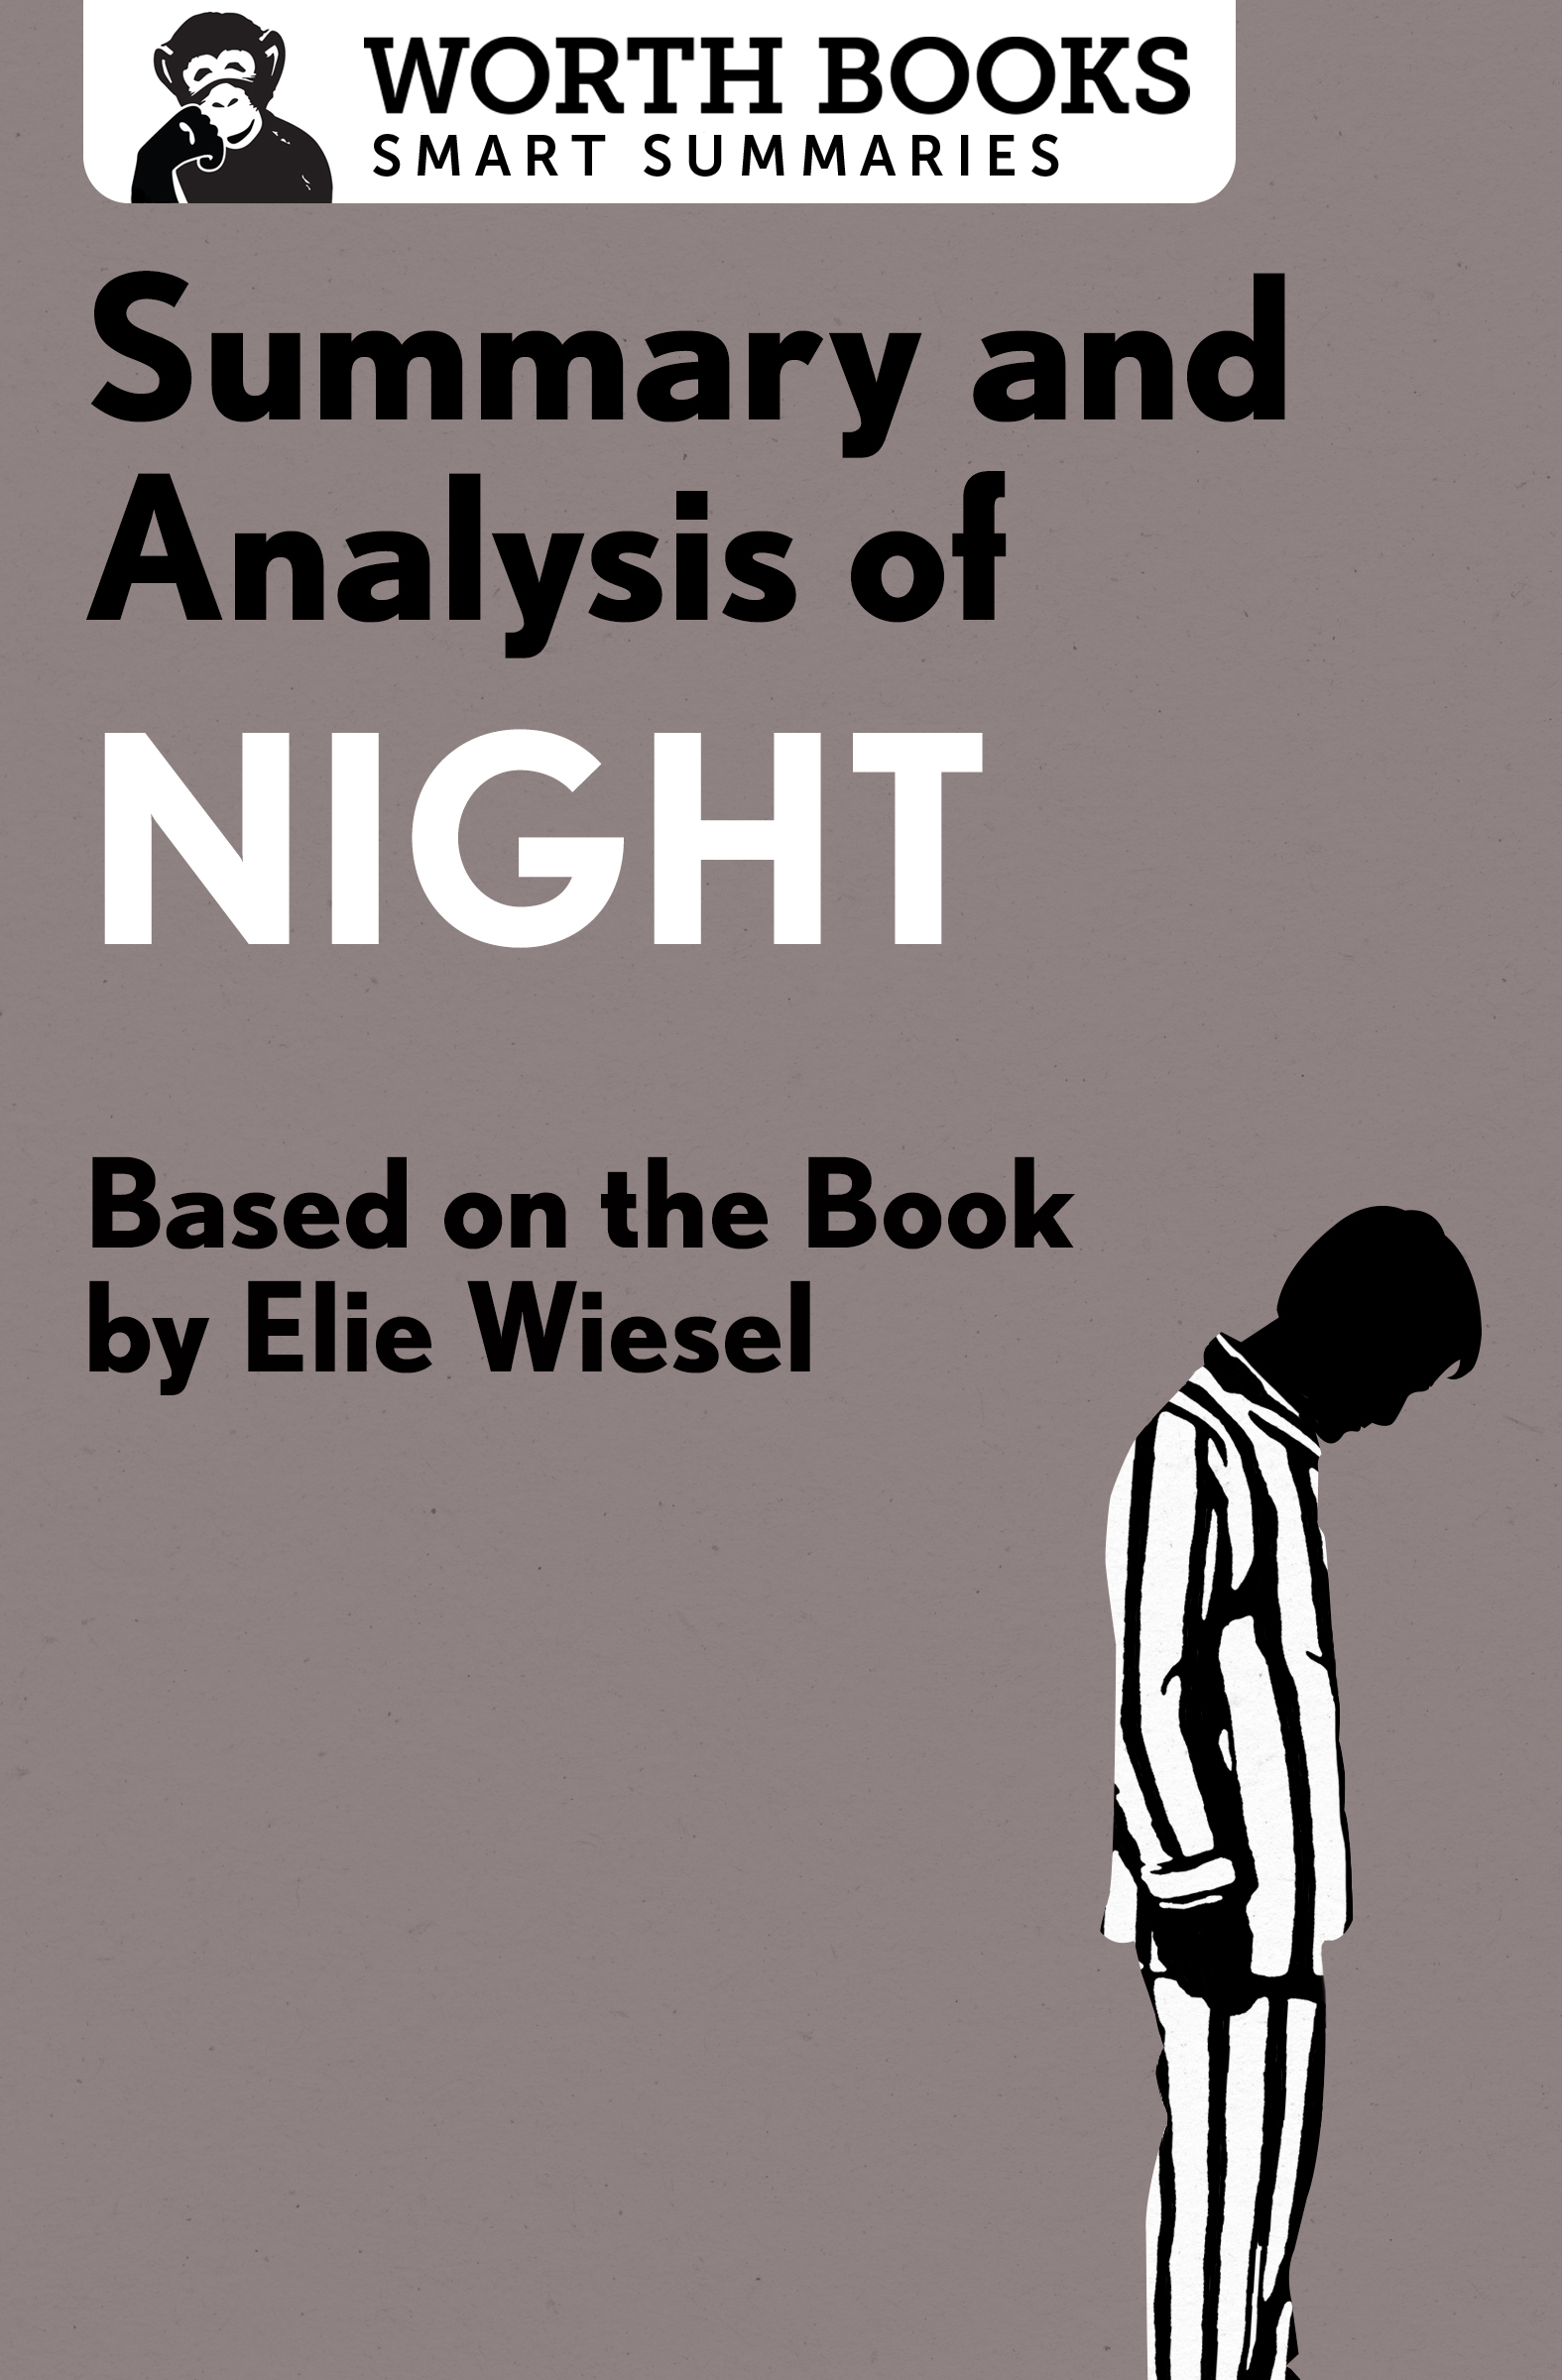 Summary and Analysis of Night: Based on the Book by Elie Wiesel